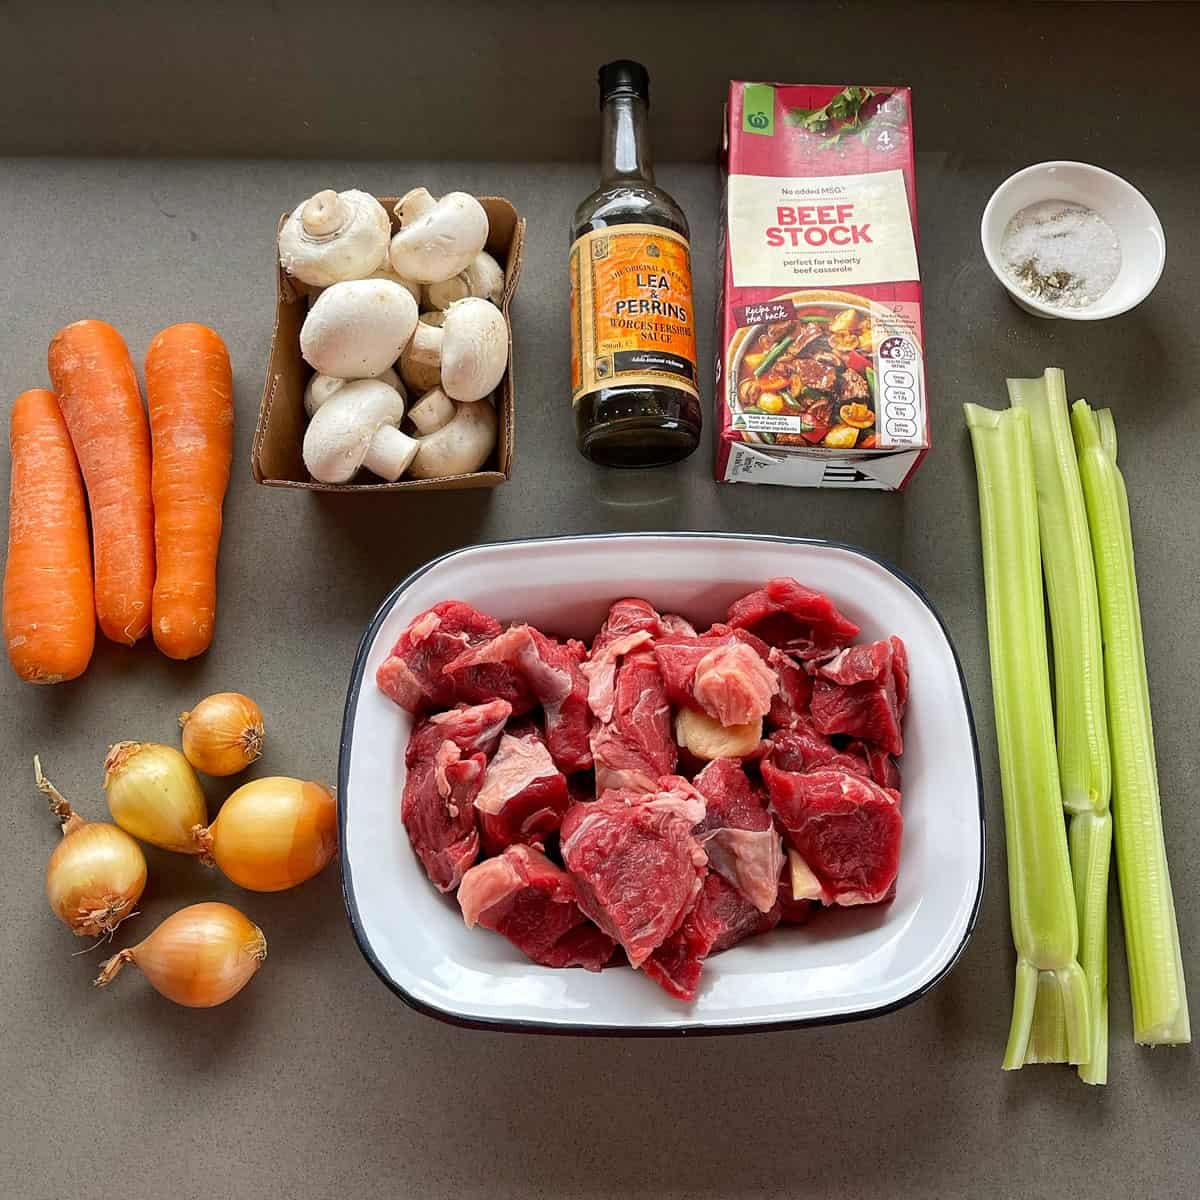 Ingredients for slow cooker beef stew on a grey bench.